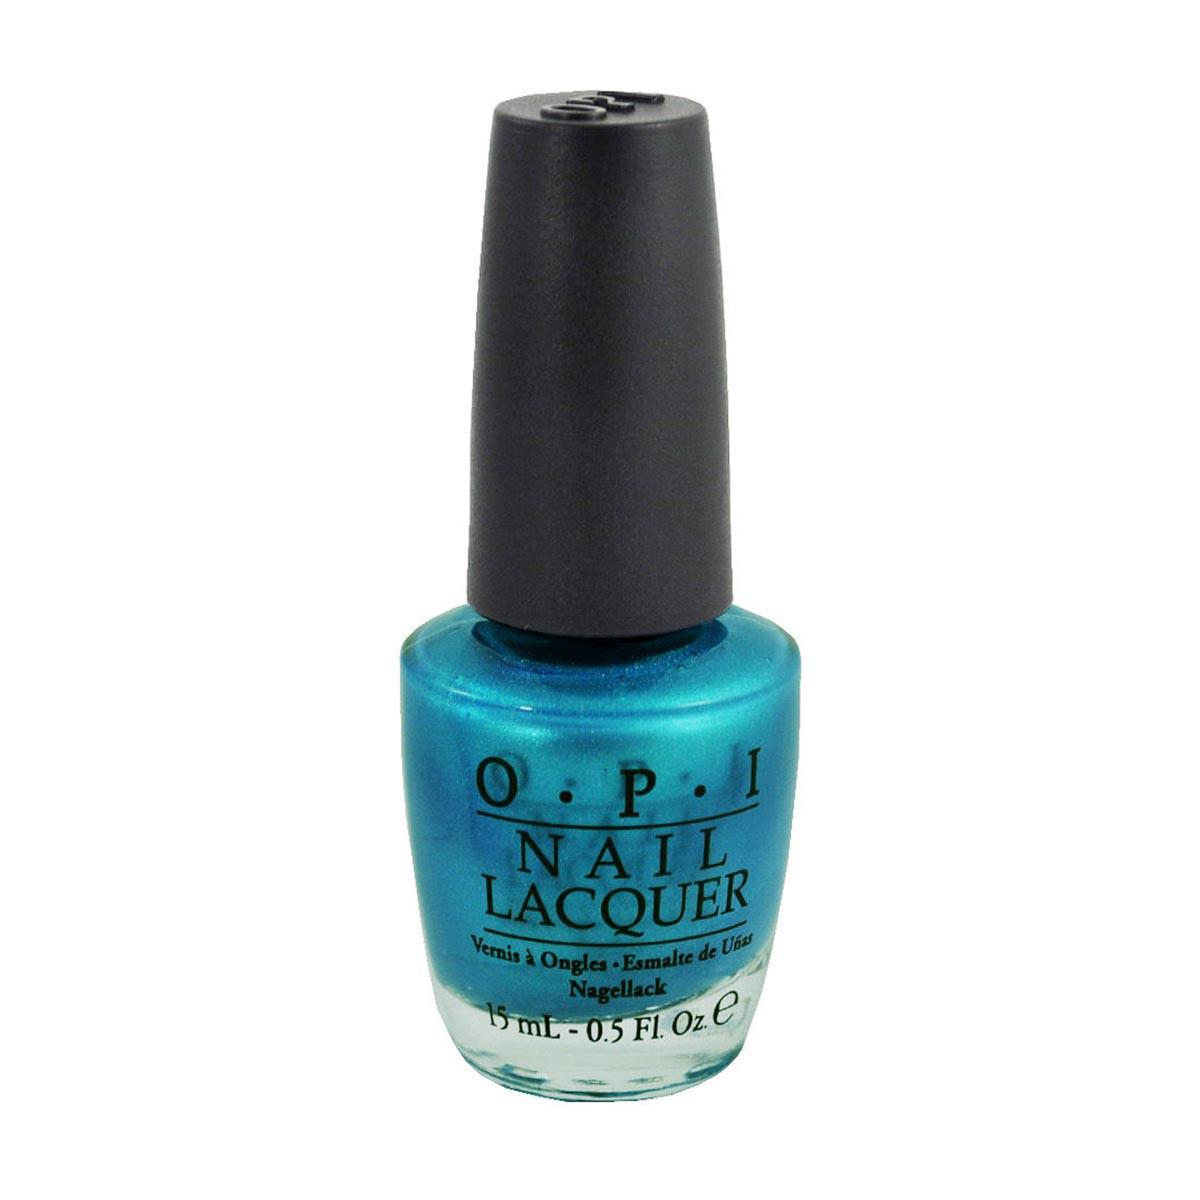 Opi fragrances Nail Lacquer Nlb54 Teal The Cows Come Home